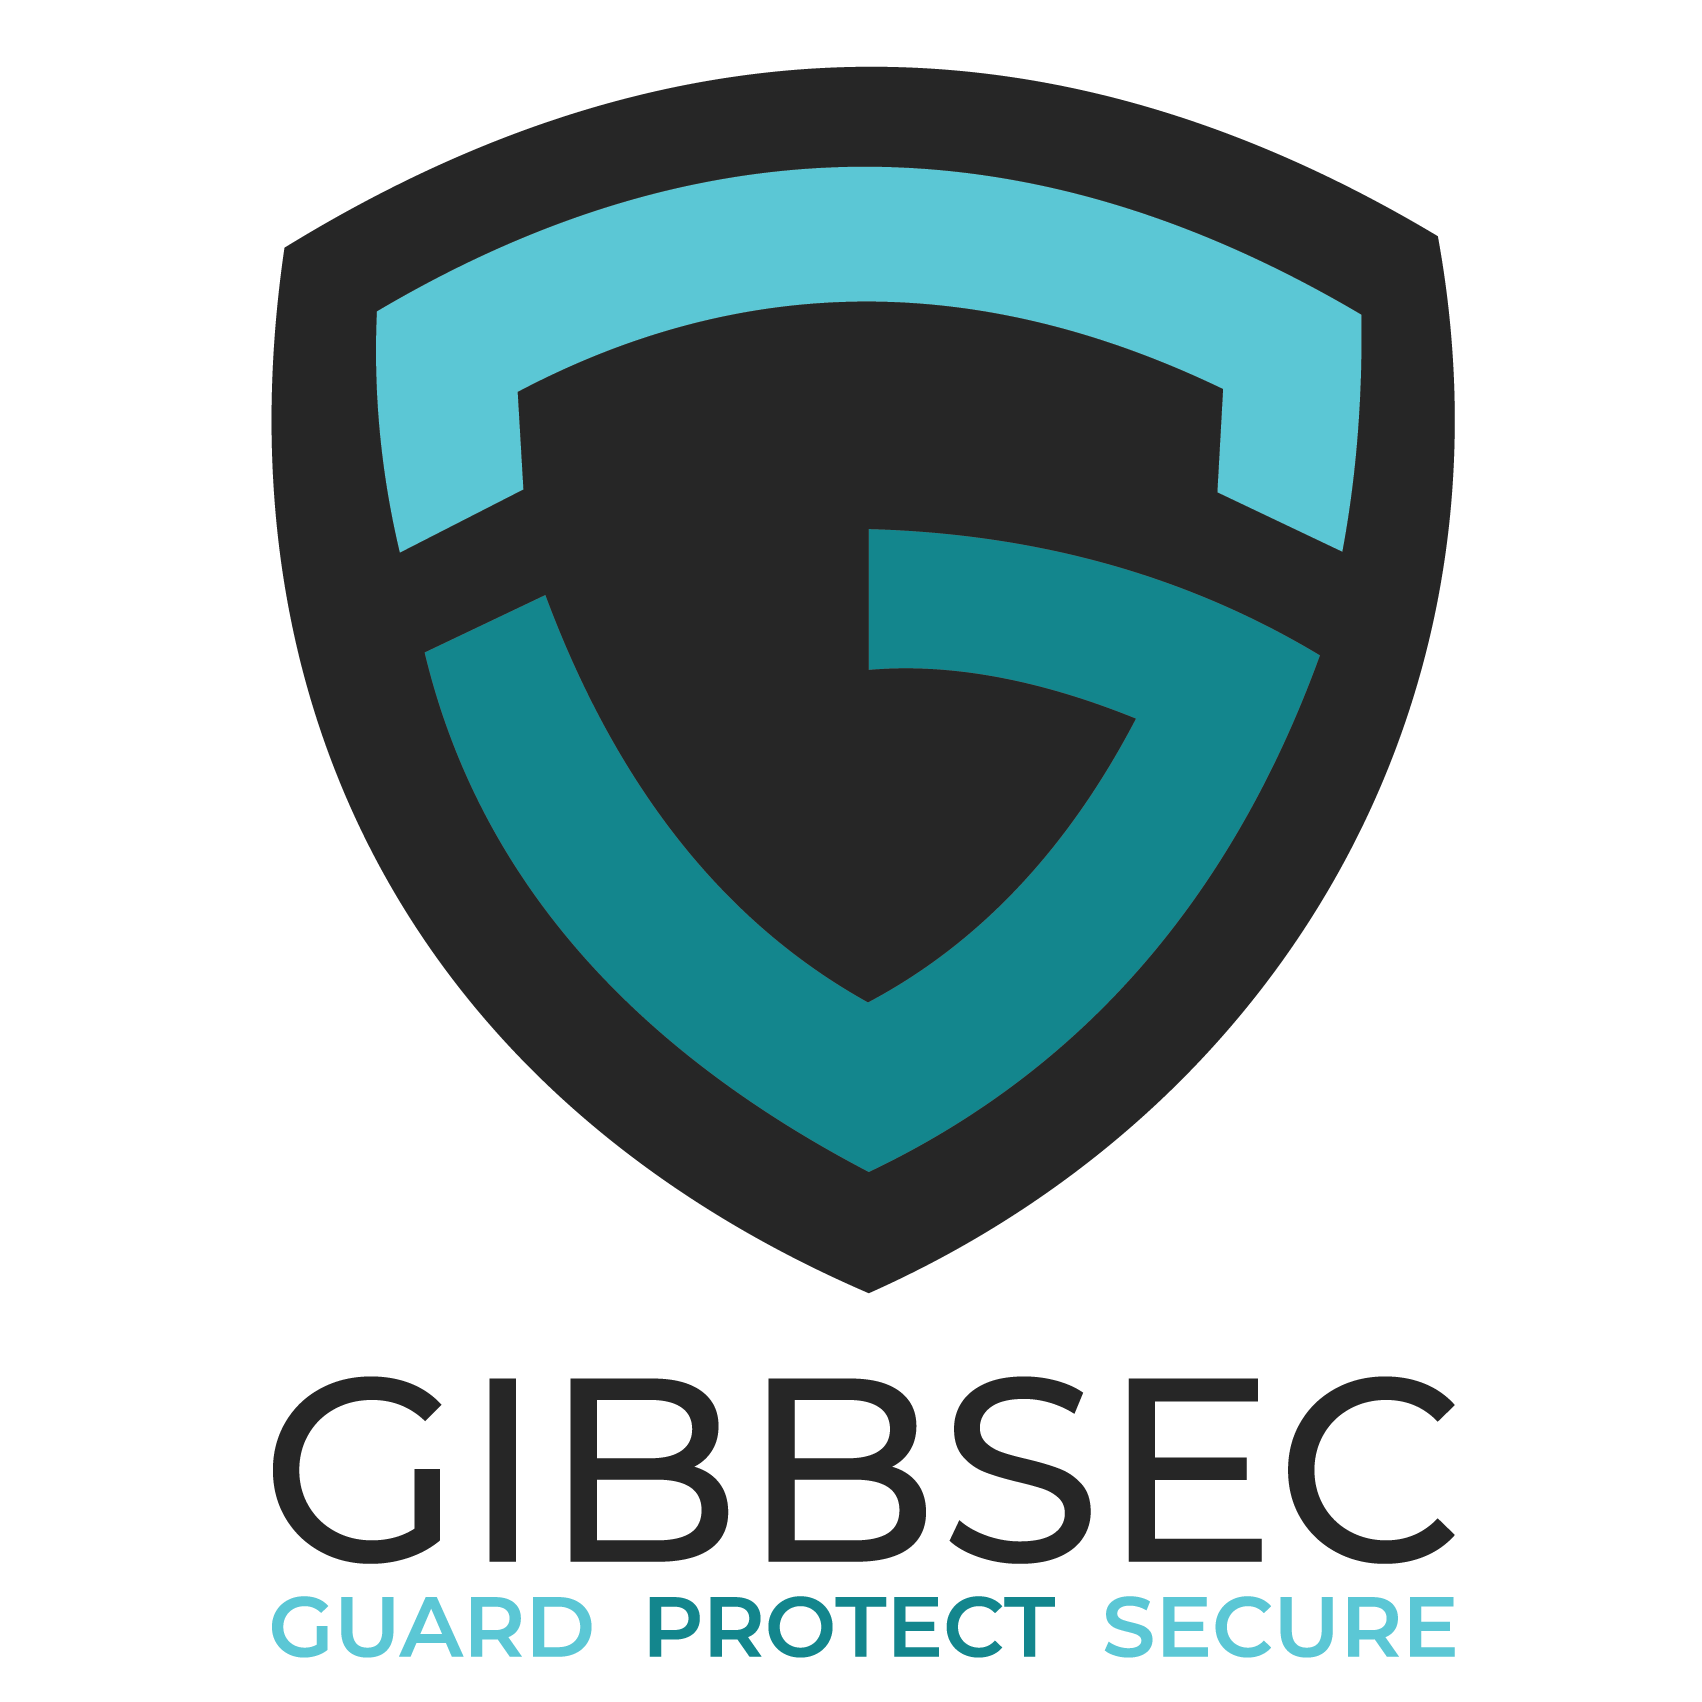 Gibbsec Security Services across Armagh